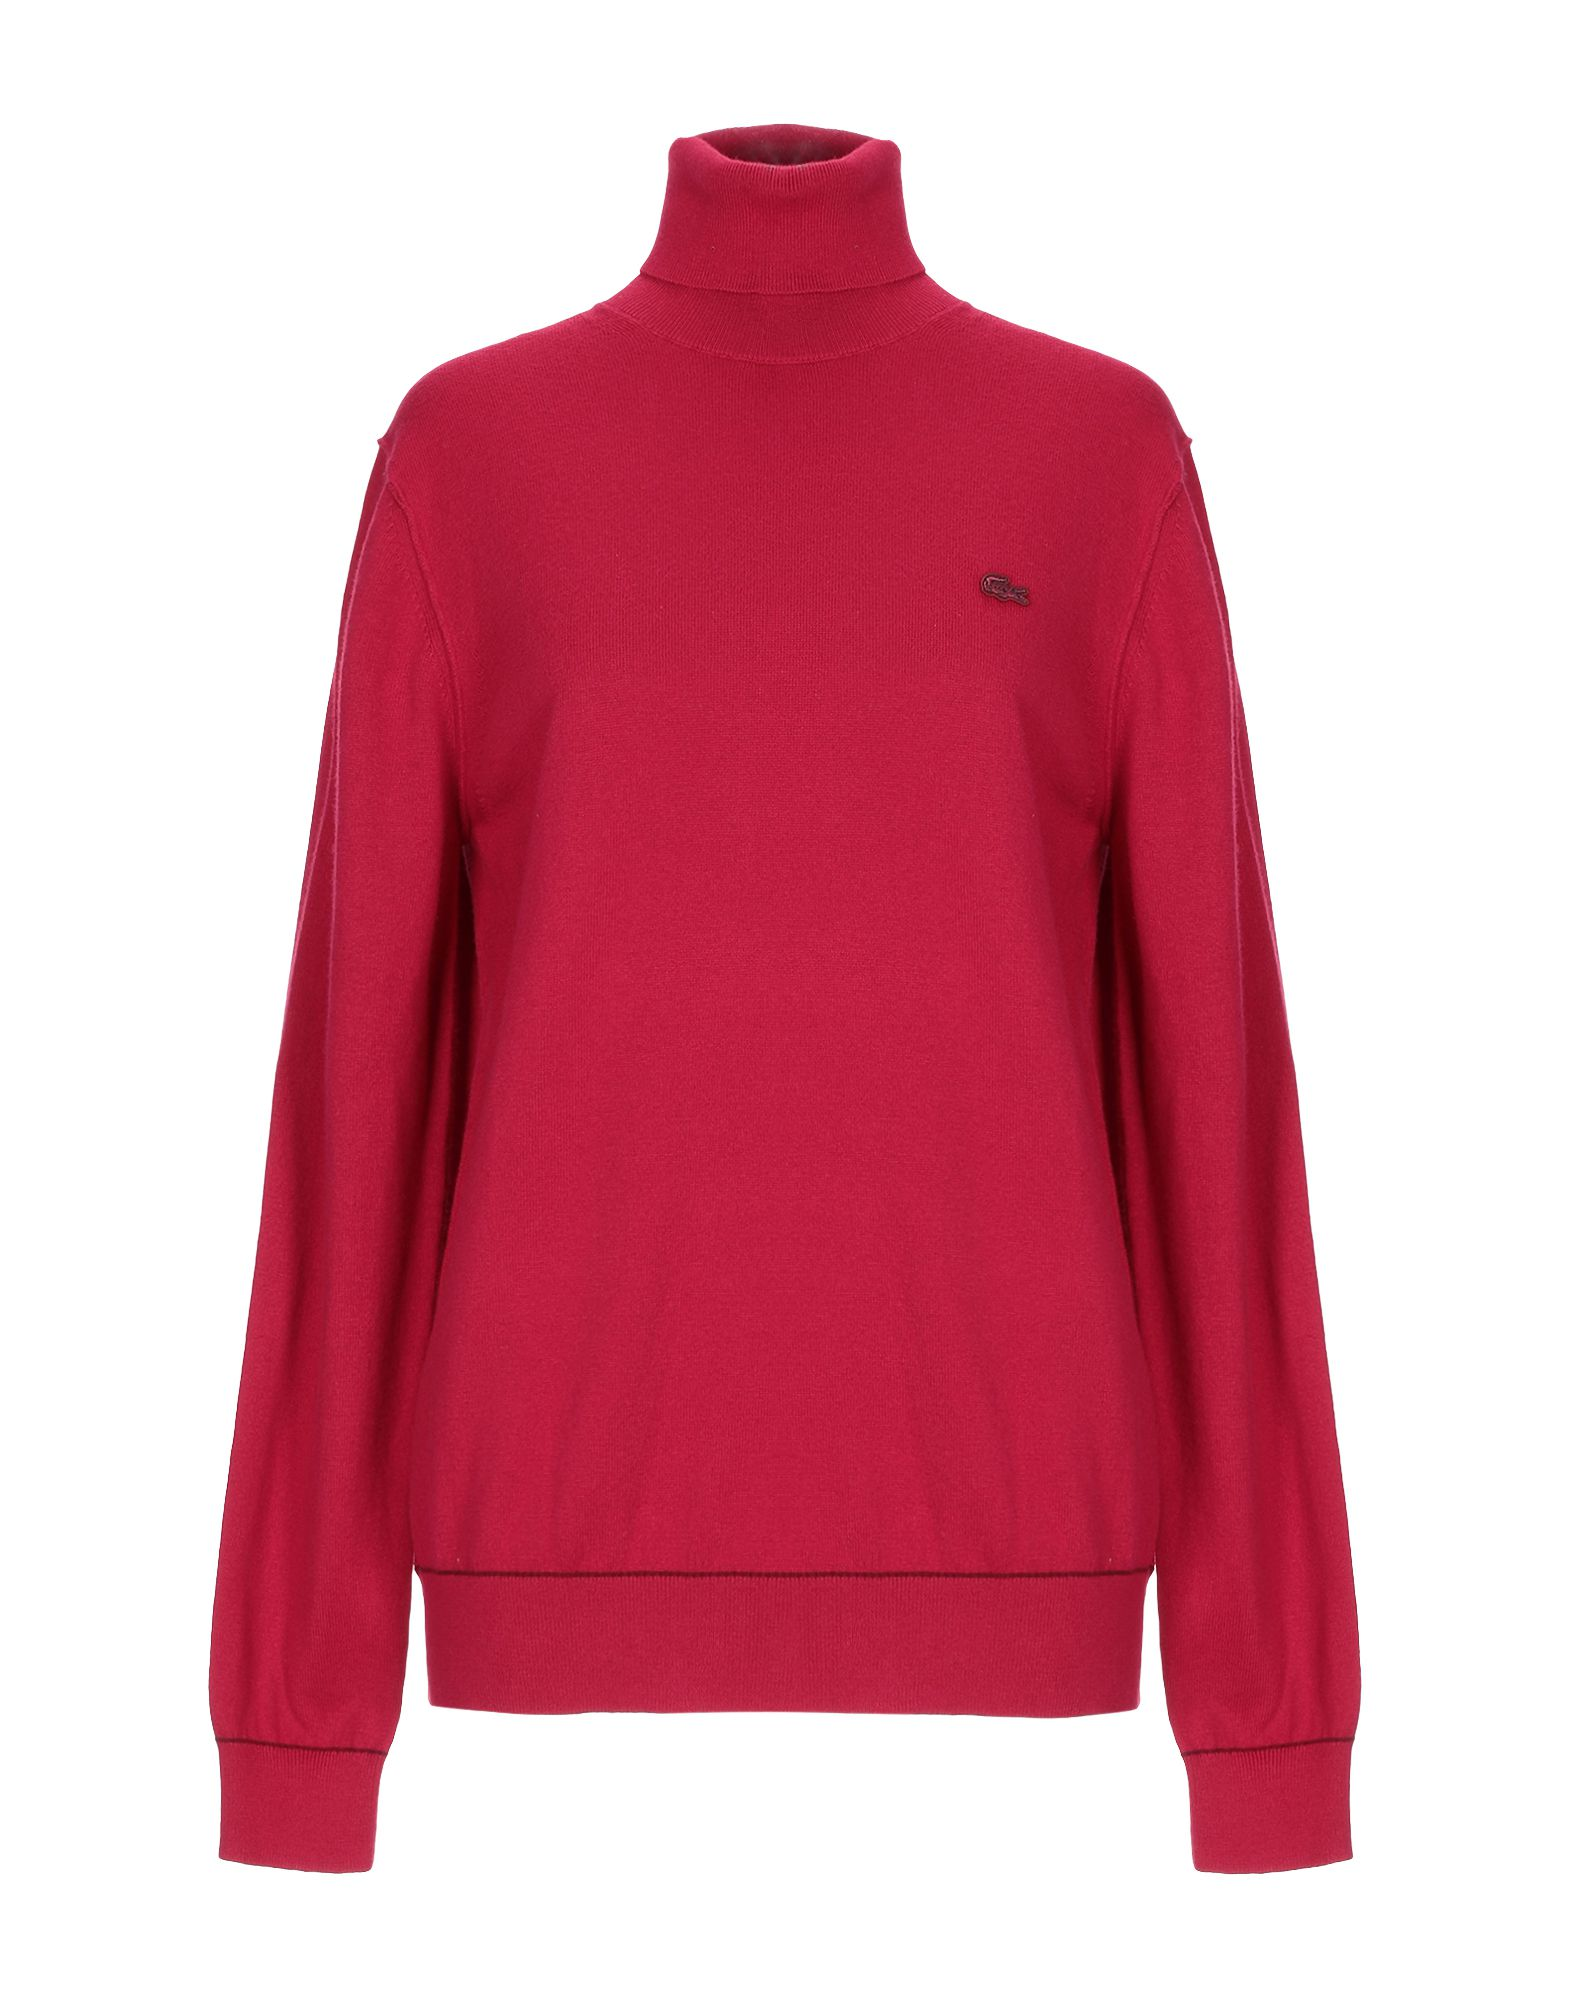 LACOSTE L!VE Водолазки трикотаж lacoste 65 live af7559